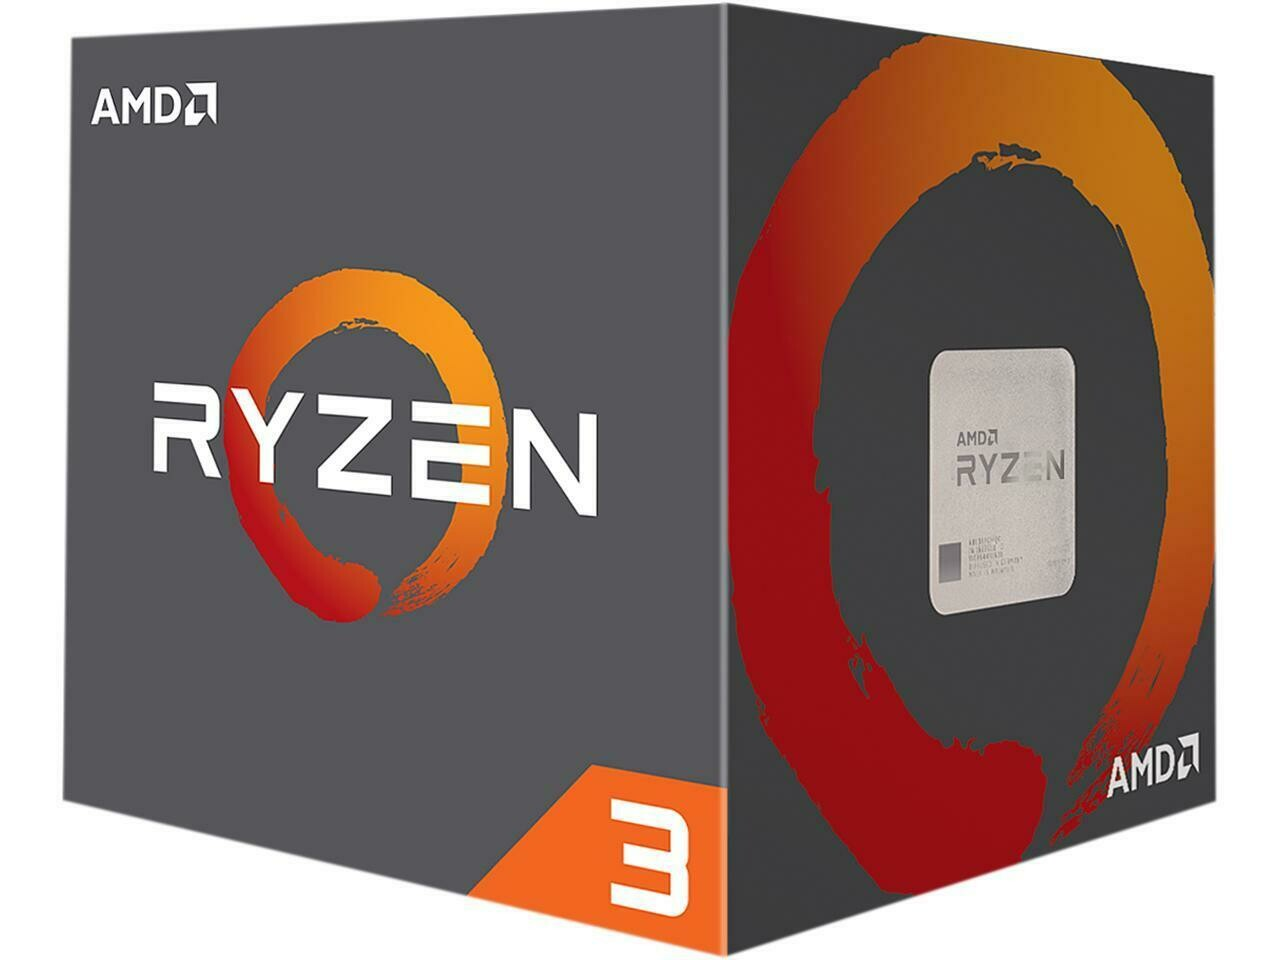 AMD RYZEN 3 1300X 4-Core 3.5 GHz (3.7 GHz Turbo) Socket AM4 65W Processor